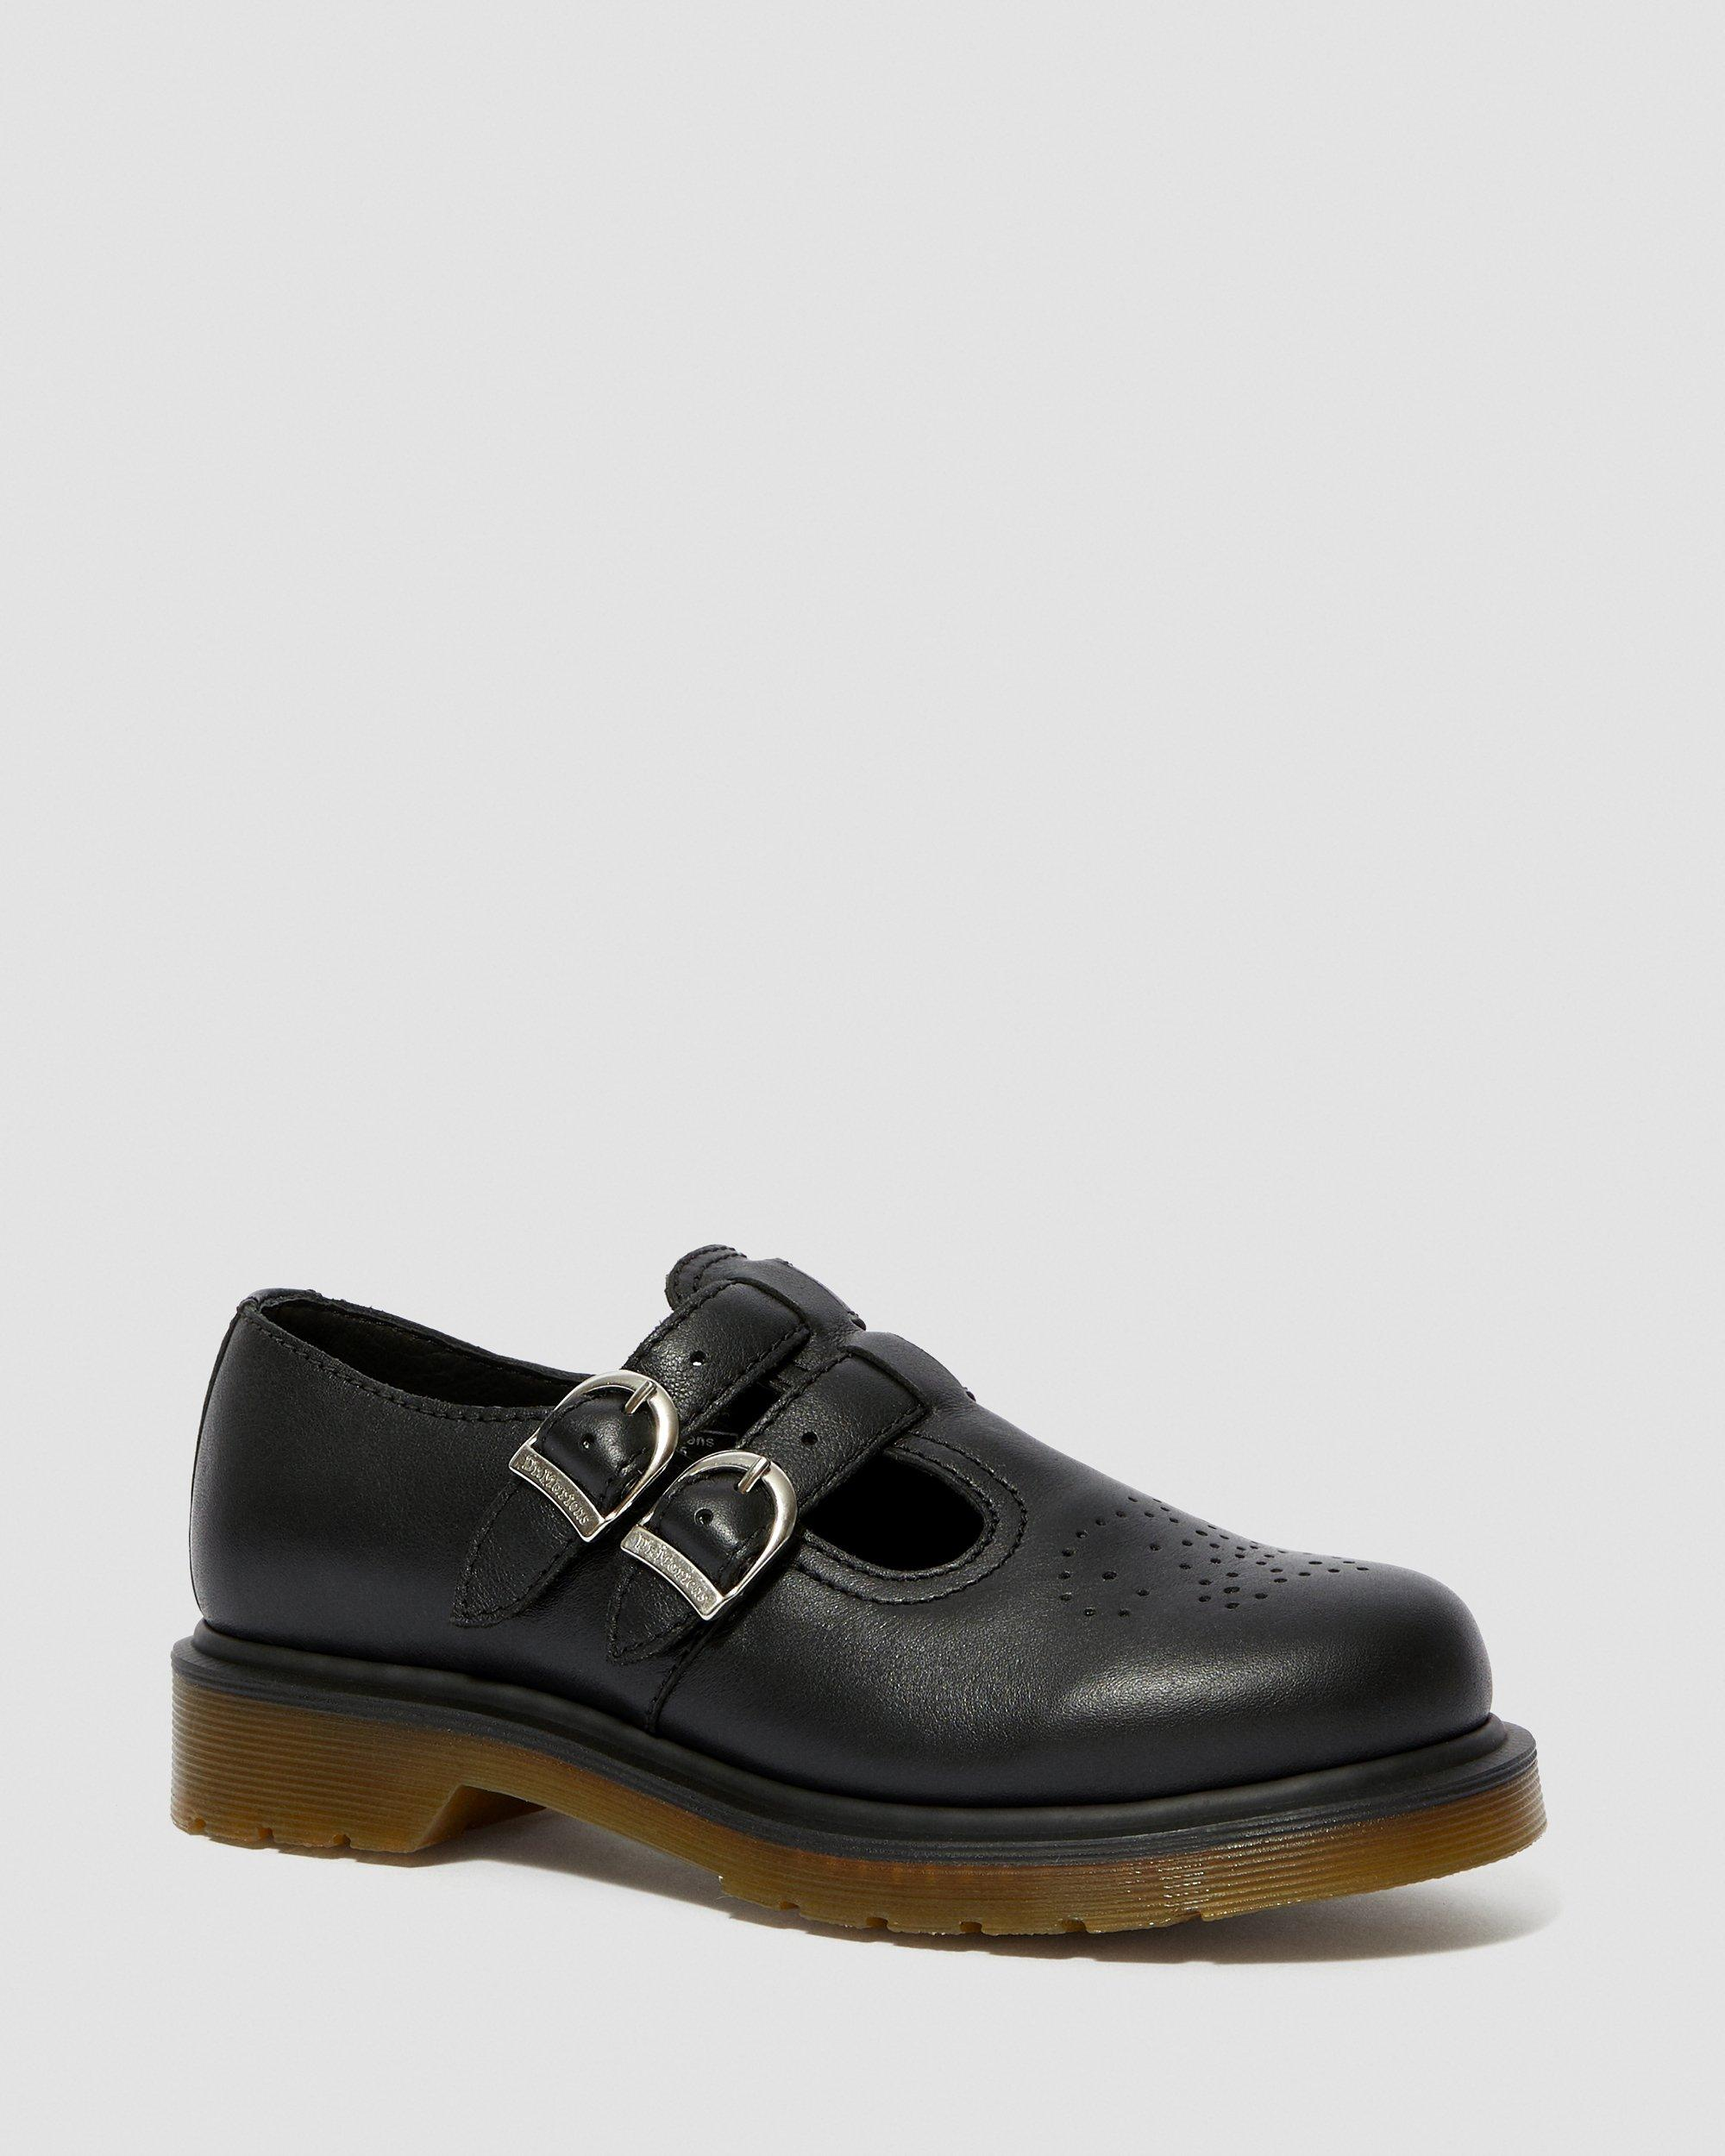 DR MARTENS 8065 VIRGINIA